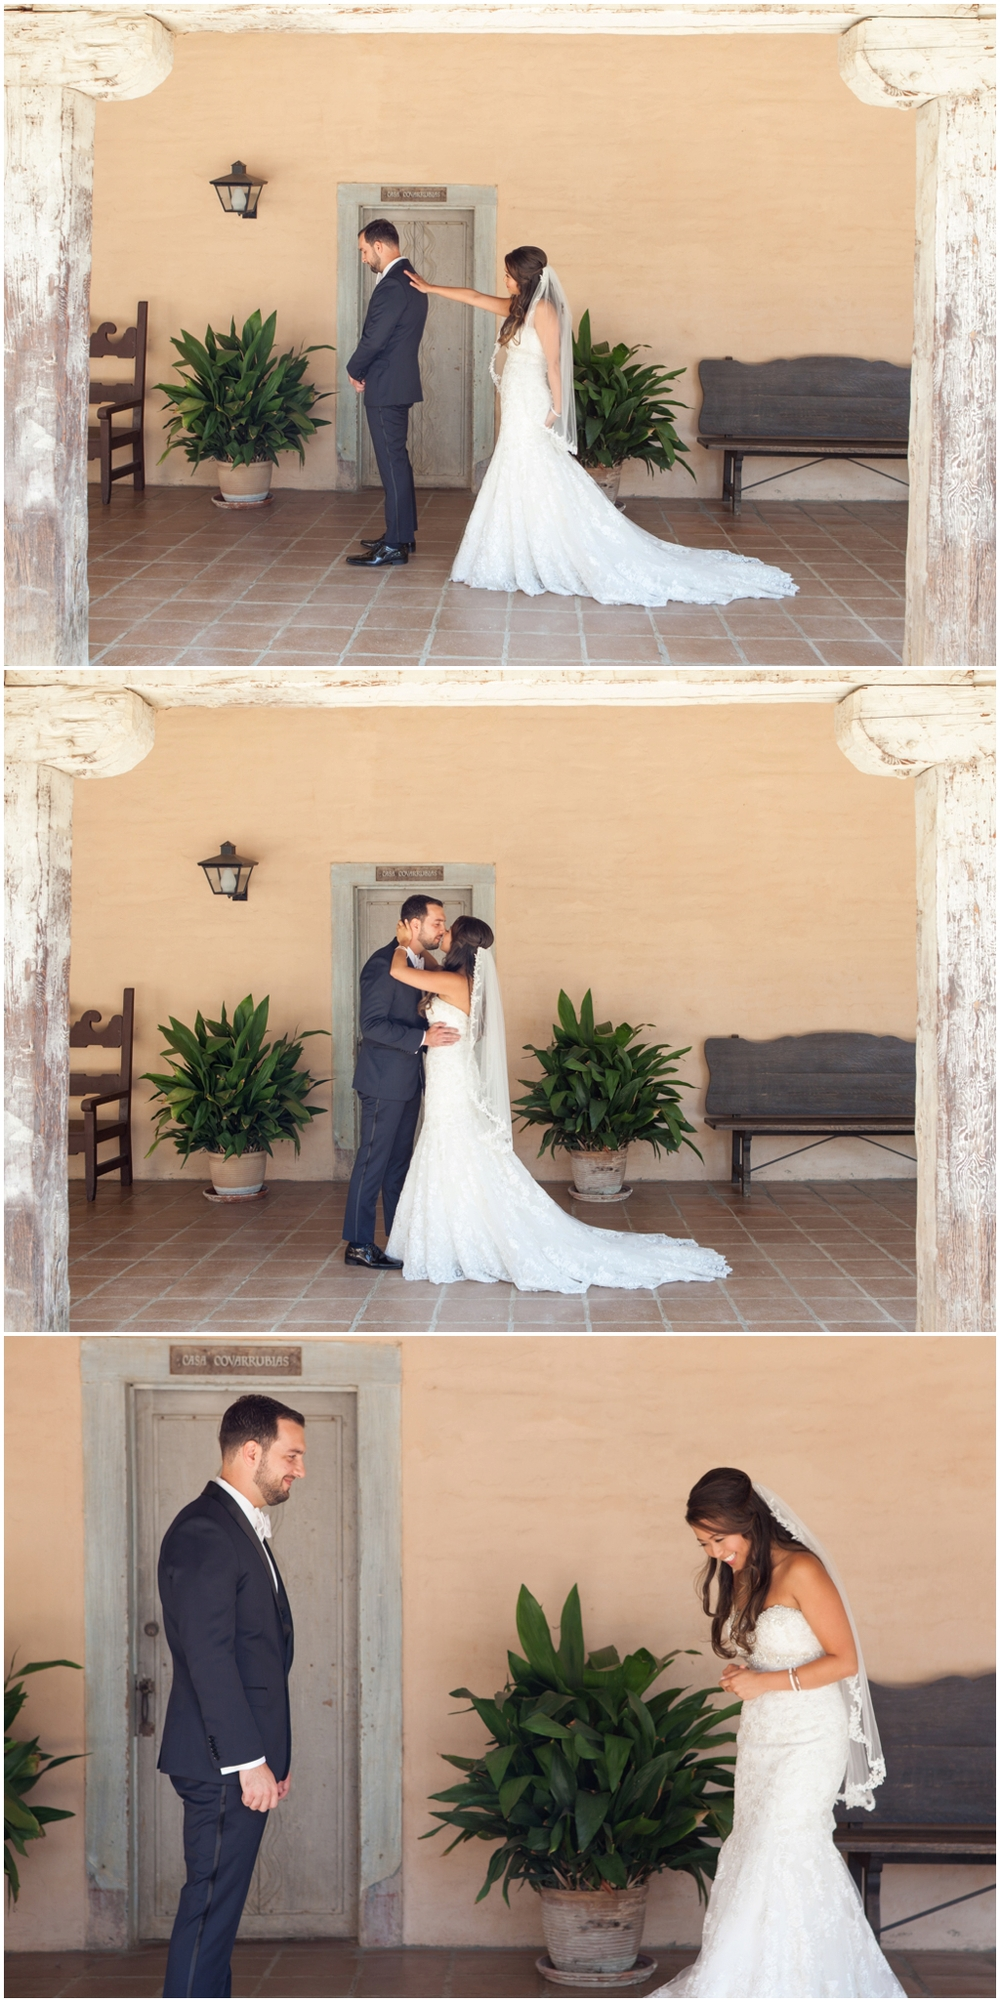 Glam Santa Barbara Historical Musuem wedding by San Luis Obispo Wedding photographer Skyla Walton_0006.jpg